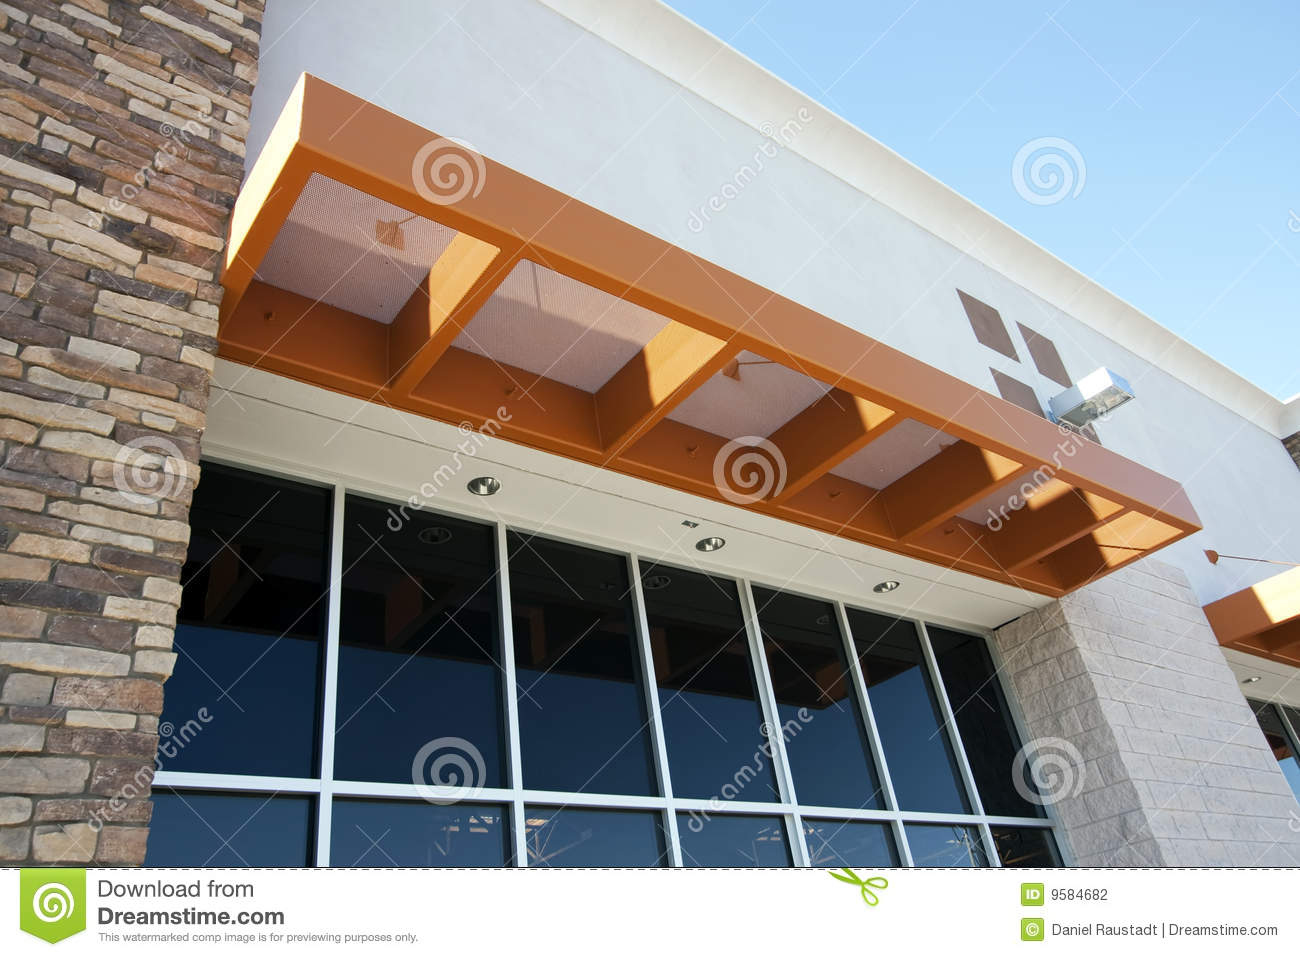 Modern Metal Awning Over Storefront Stock Photography - Image: 9584682